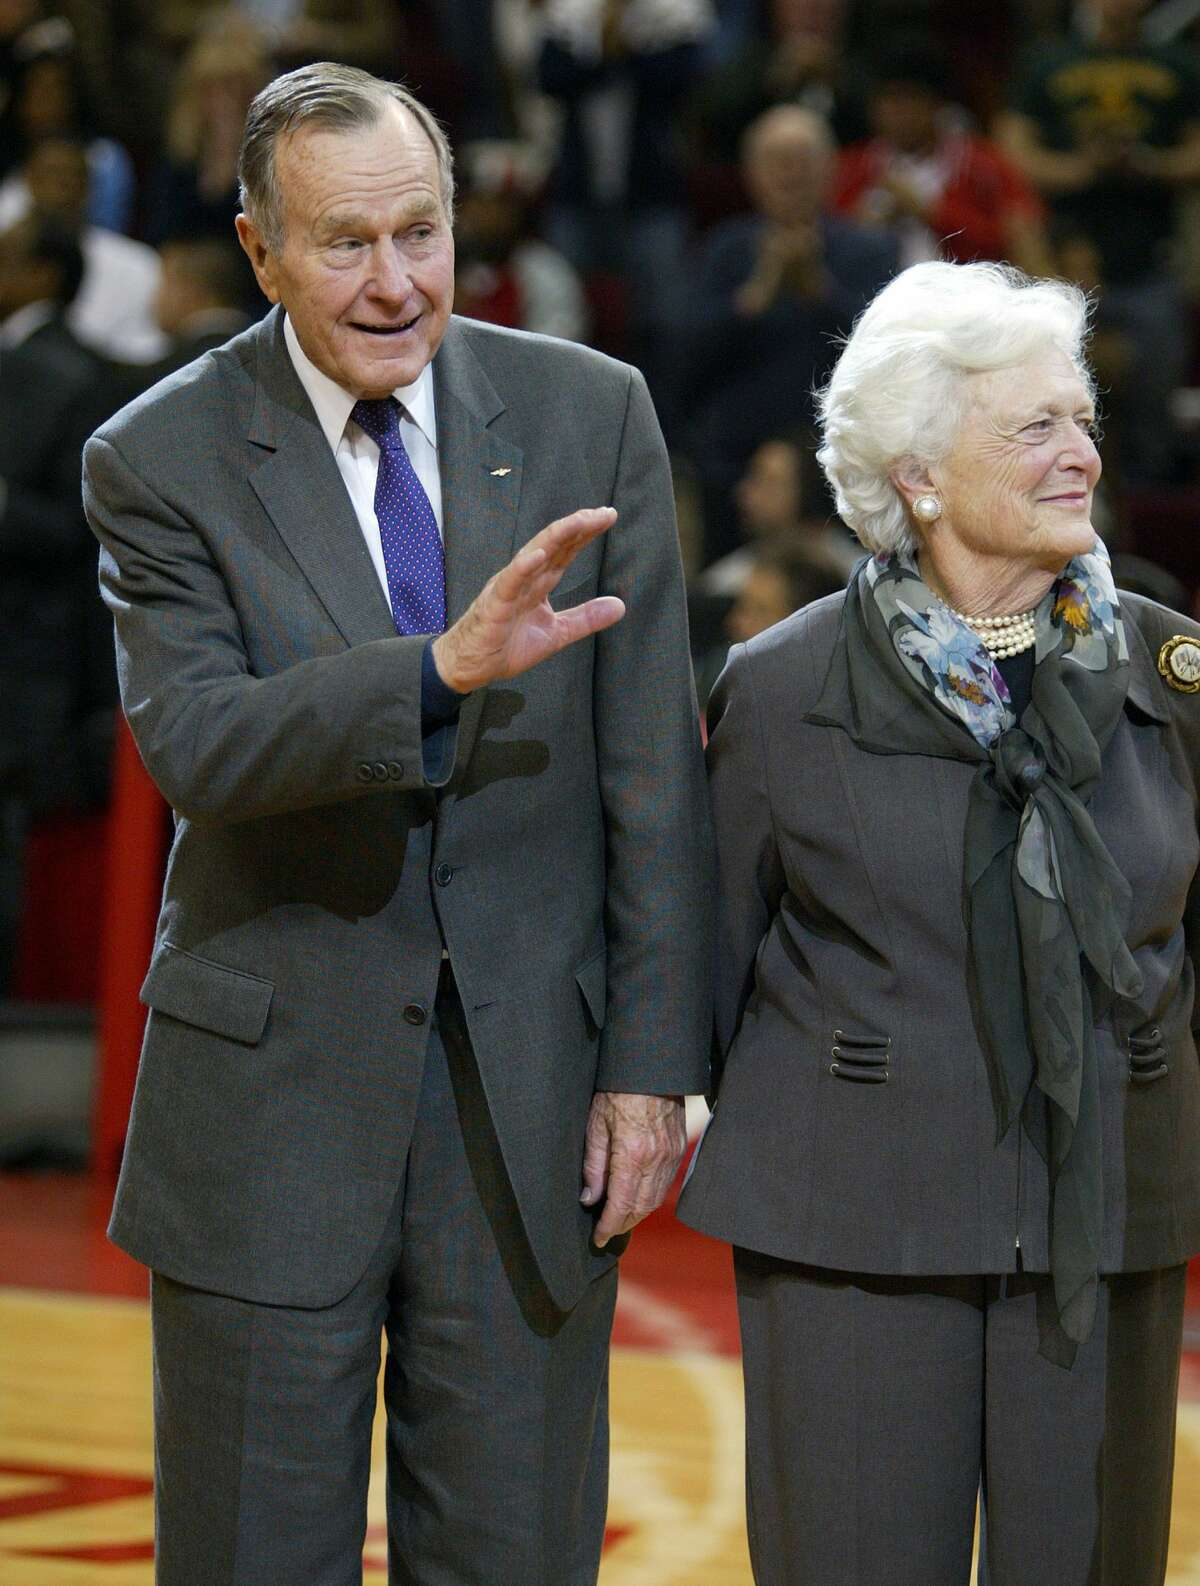 Former President George H.W. Bush and First Lady Barbara Bush receive a check for $200,000 from Toyota for the Bush-Clinton Fund to help victims of tsunami in south Asia at the Toyota Center, January 24, 2005 in Houston, Texas. (Photo by Bob Levey/WireImage)